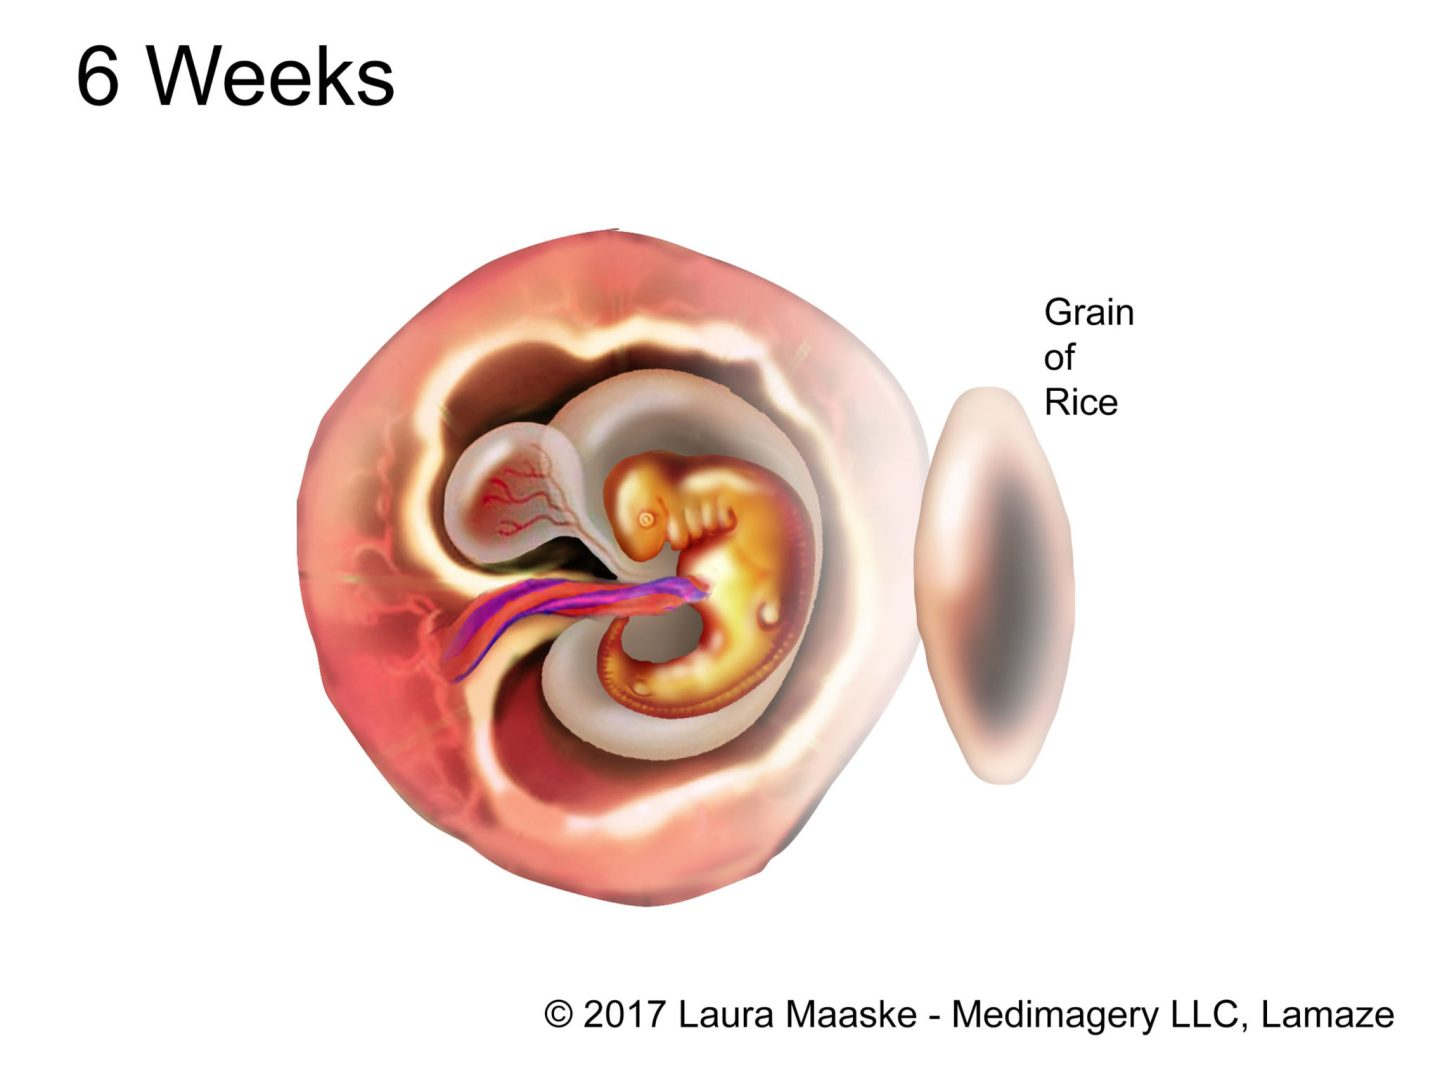 6-weeks-fetus-rice-medical-illustration-copyrighted-material